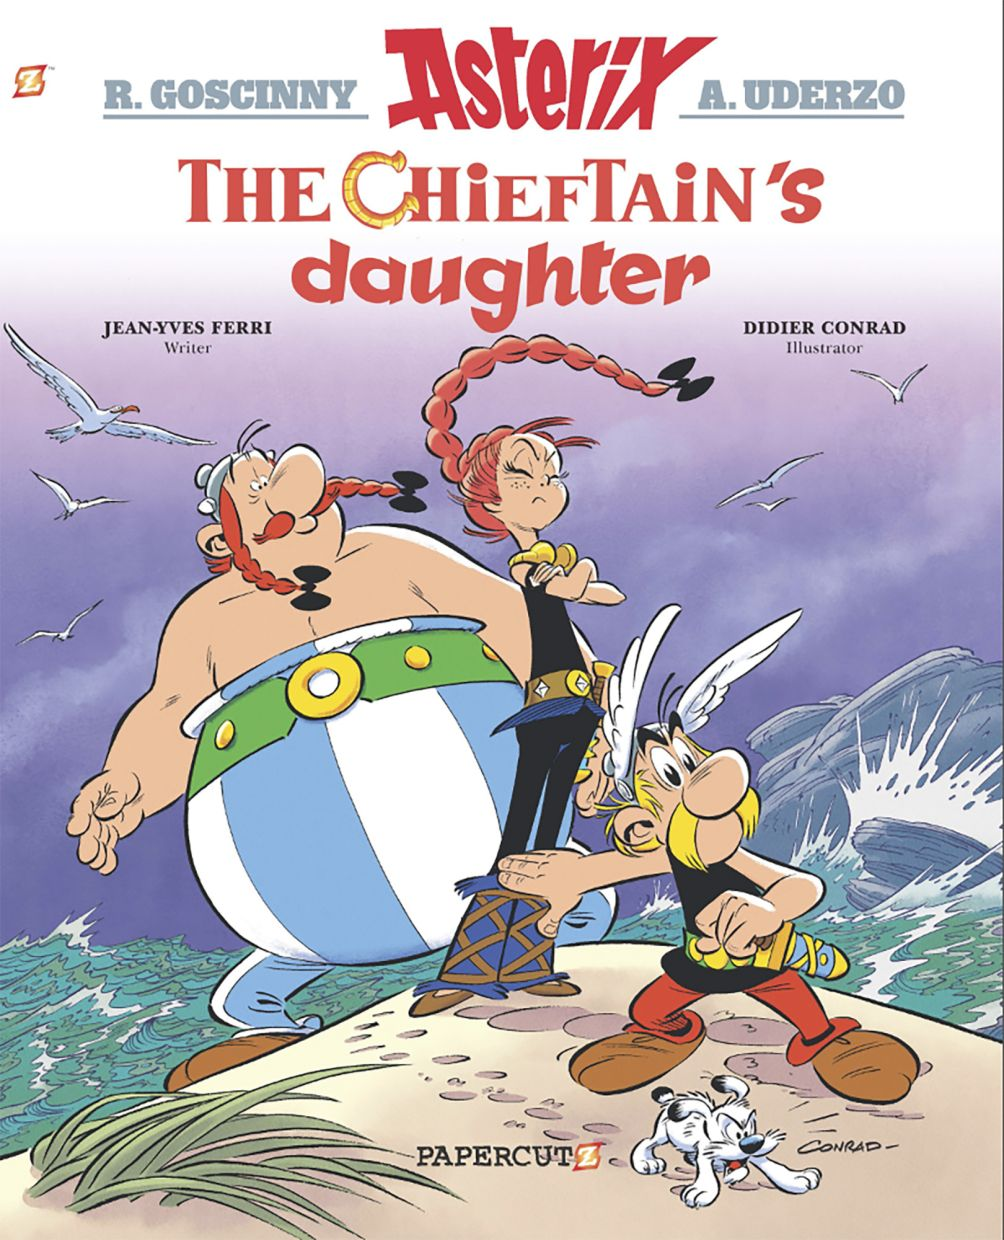 This image released by Papercutz shows the cover image for 'The Chieftain's Daughter,' the latest in the Asterix collection. Papercutz, which specialises in graphic novels for all ages, is republishing 'Asterix' collections this summer with a new English translations - one specifically geared to American readers. Photo: AP